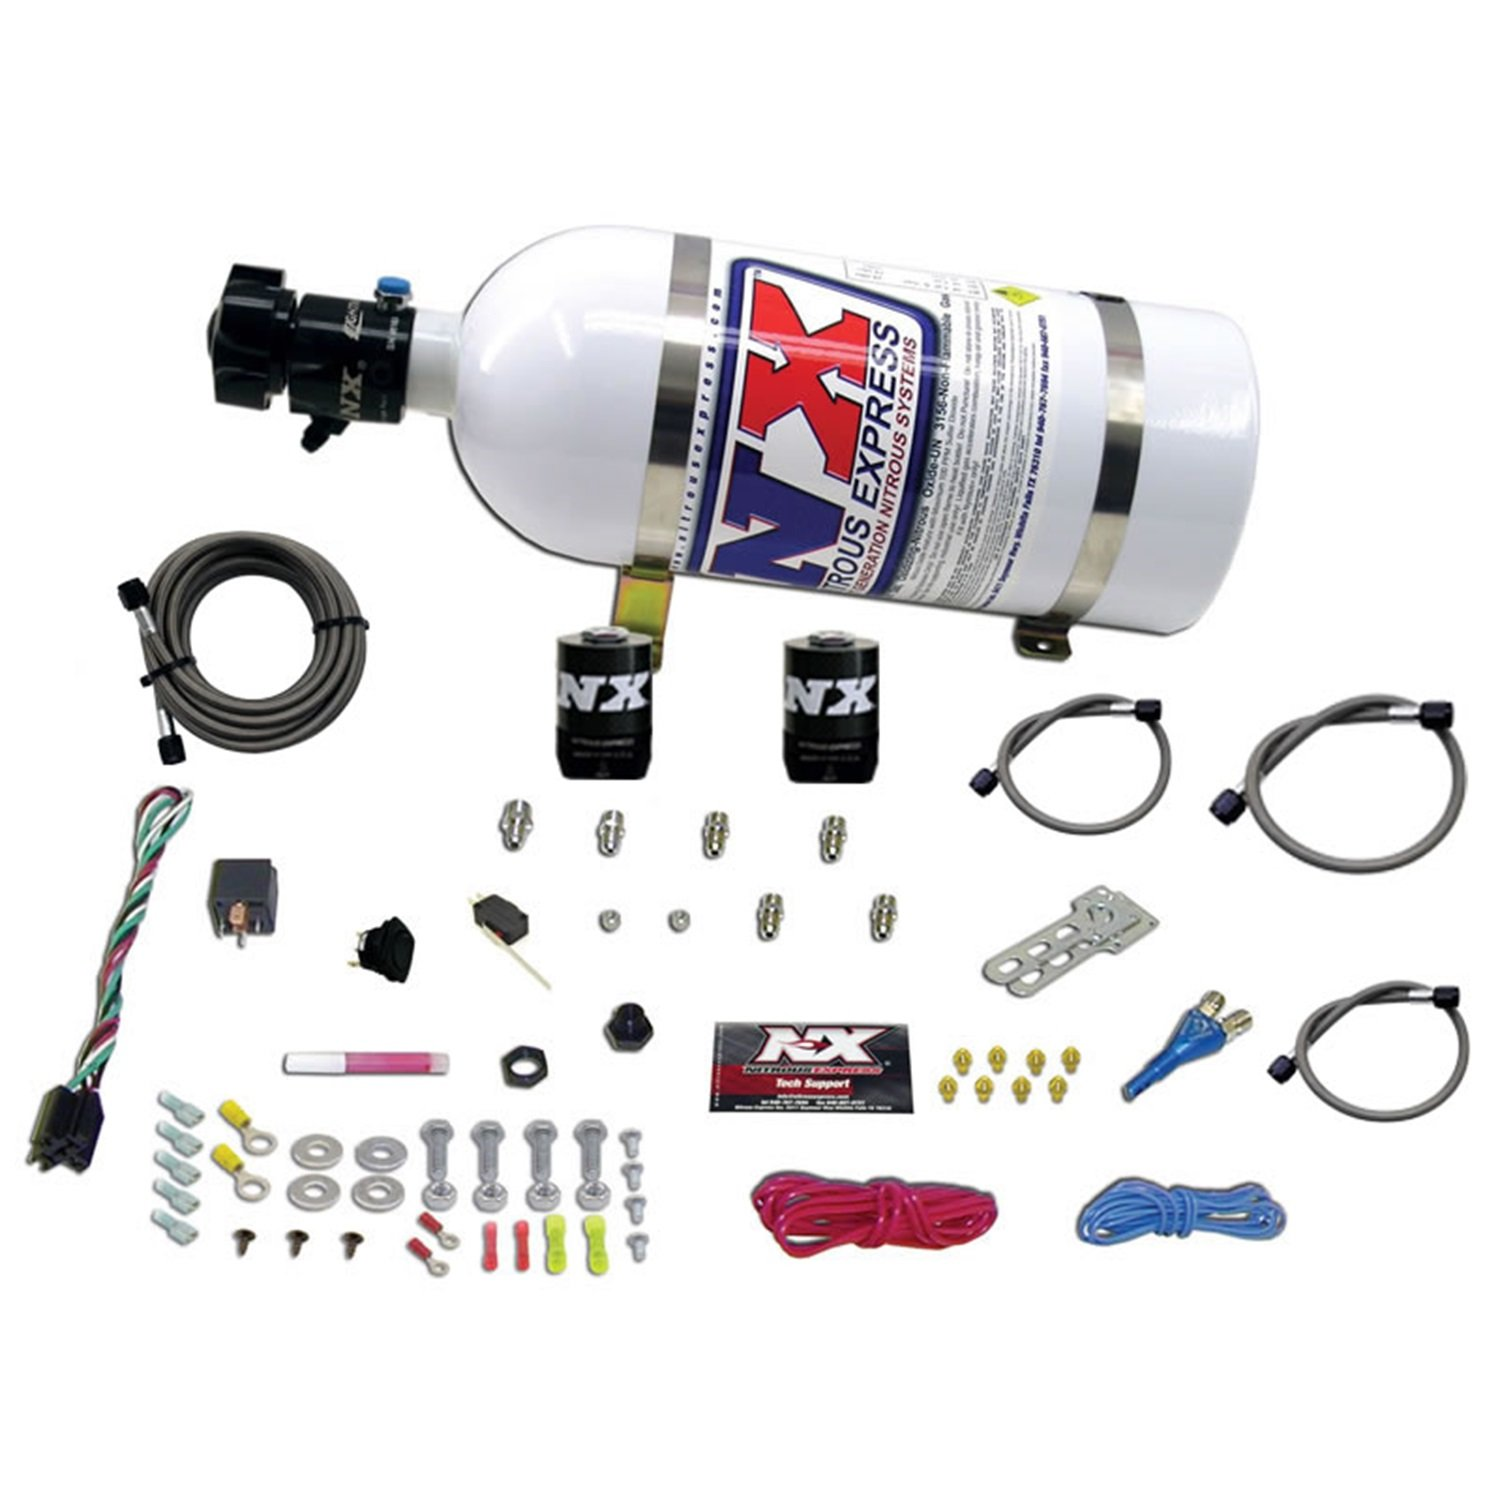 Nitrous Express 20118-10 100-250 HP Race EFI Single Nozzle with 10 lbs. Bottle for GM